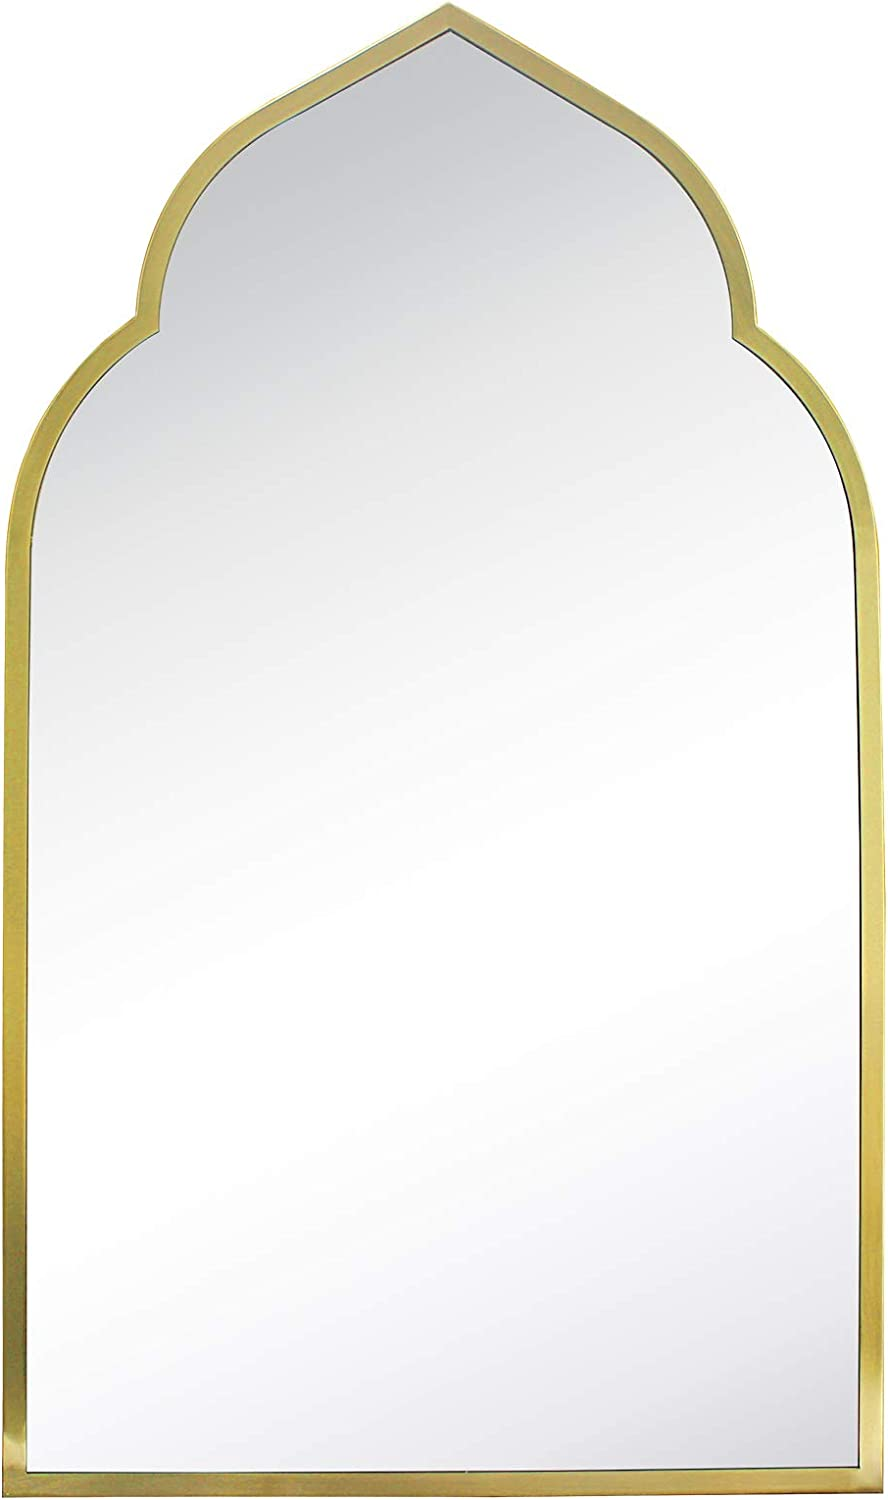 TEHOME Gold Metal Framed Bathroom Mirror in Stainless Steel Arch Mirror for Wall Décor 22 x 36 inch